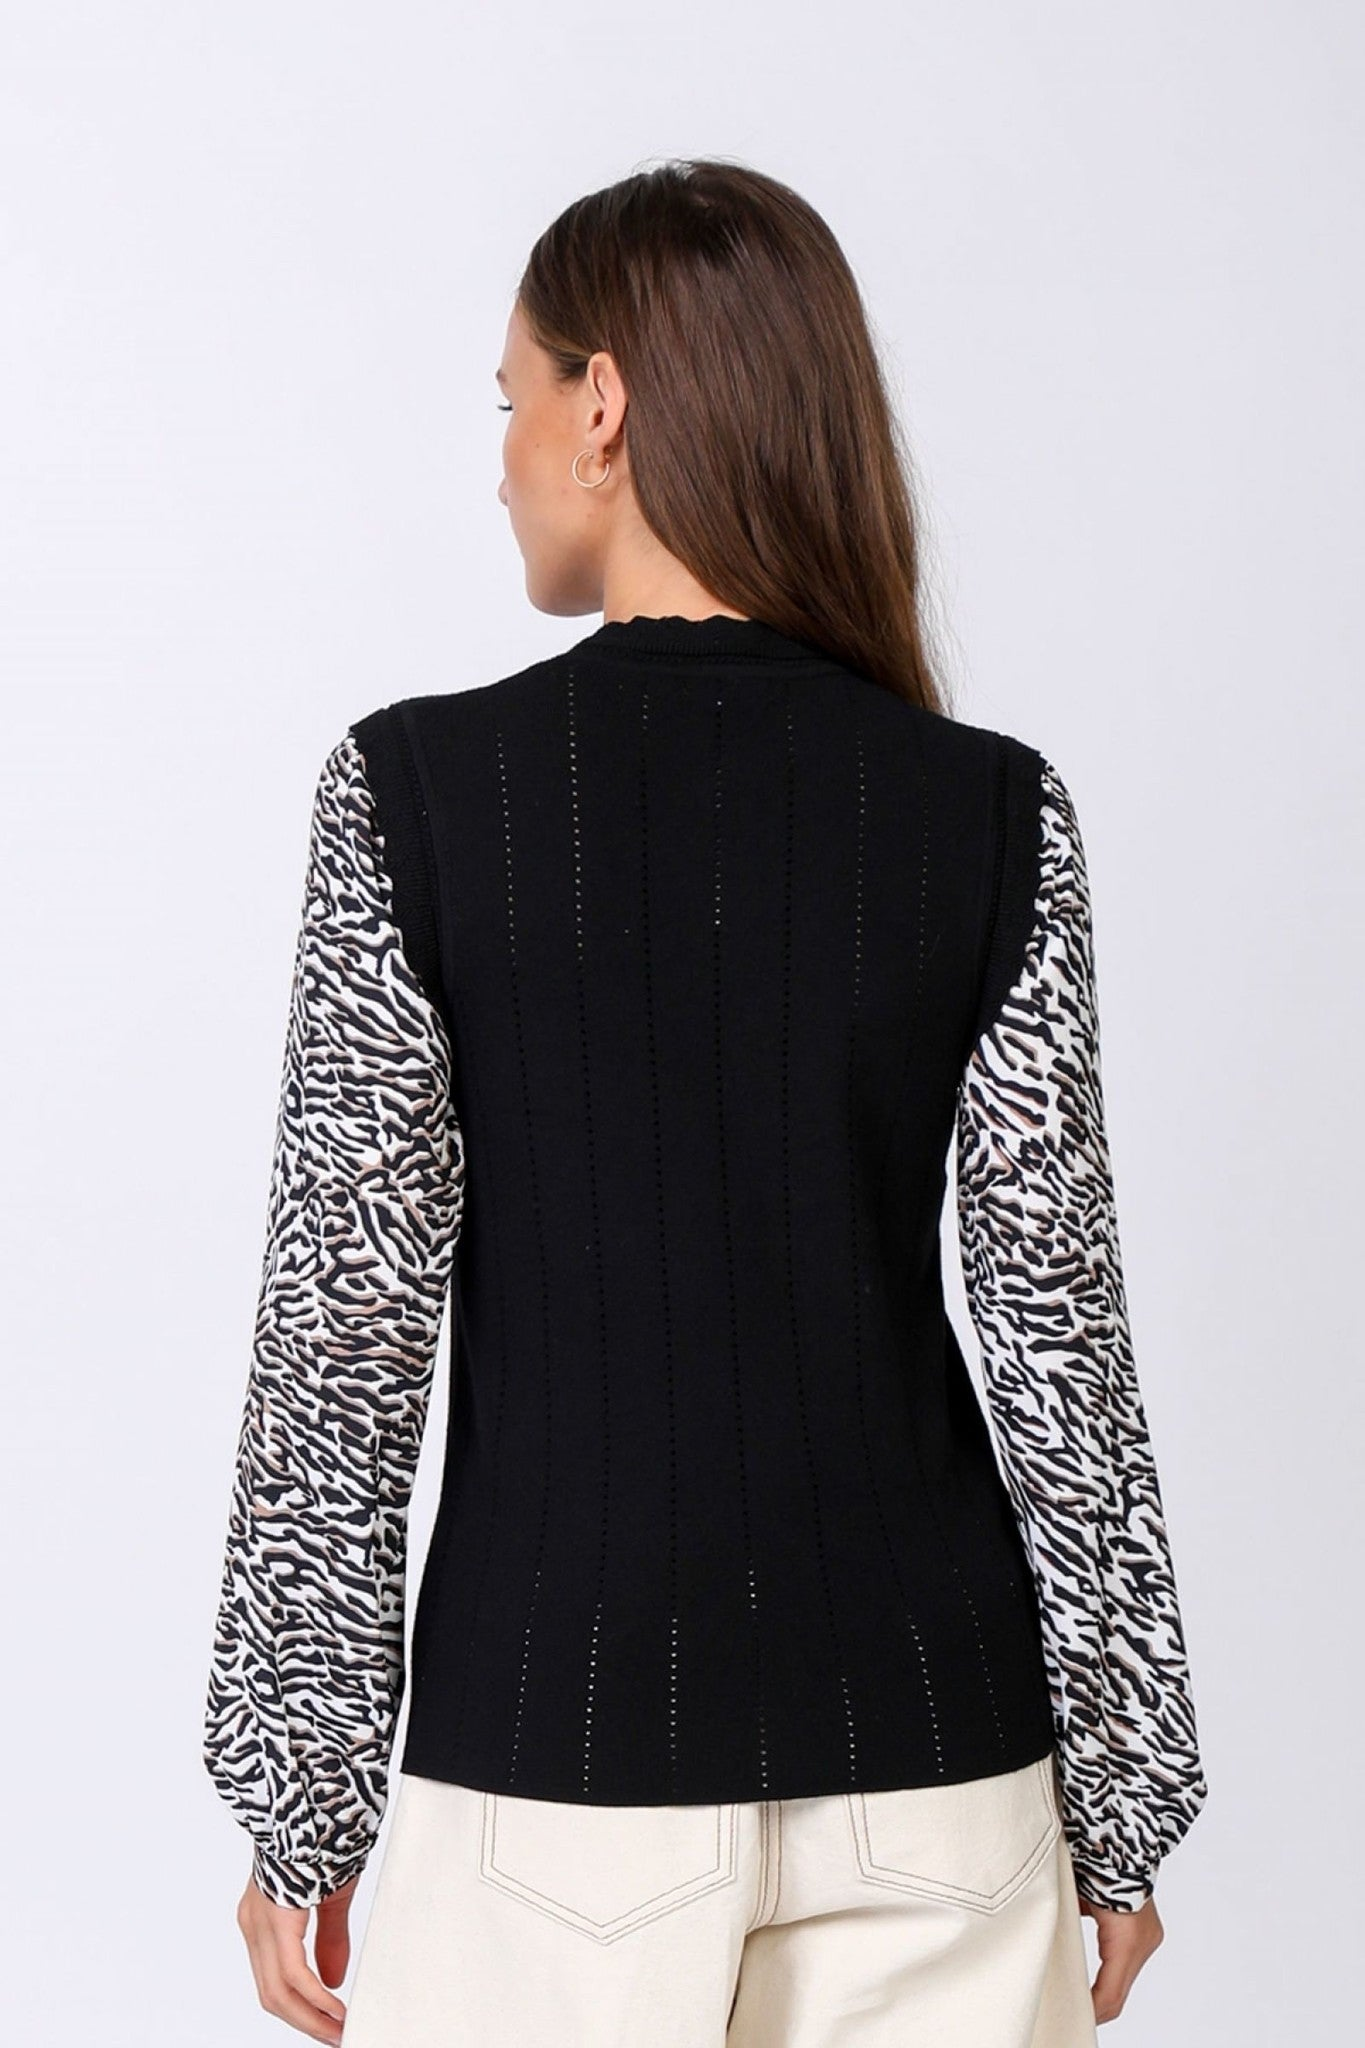 Black Sweater W/Zebra Contrast Sleeves (FINAL SALE)